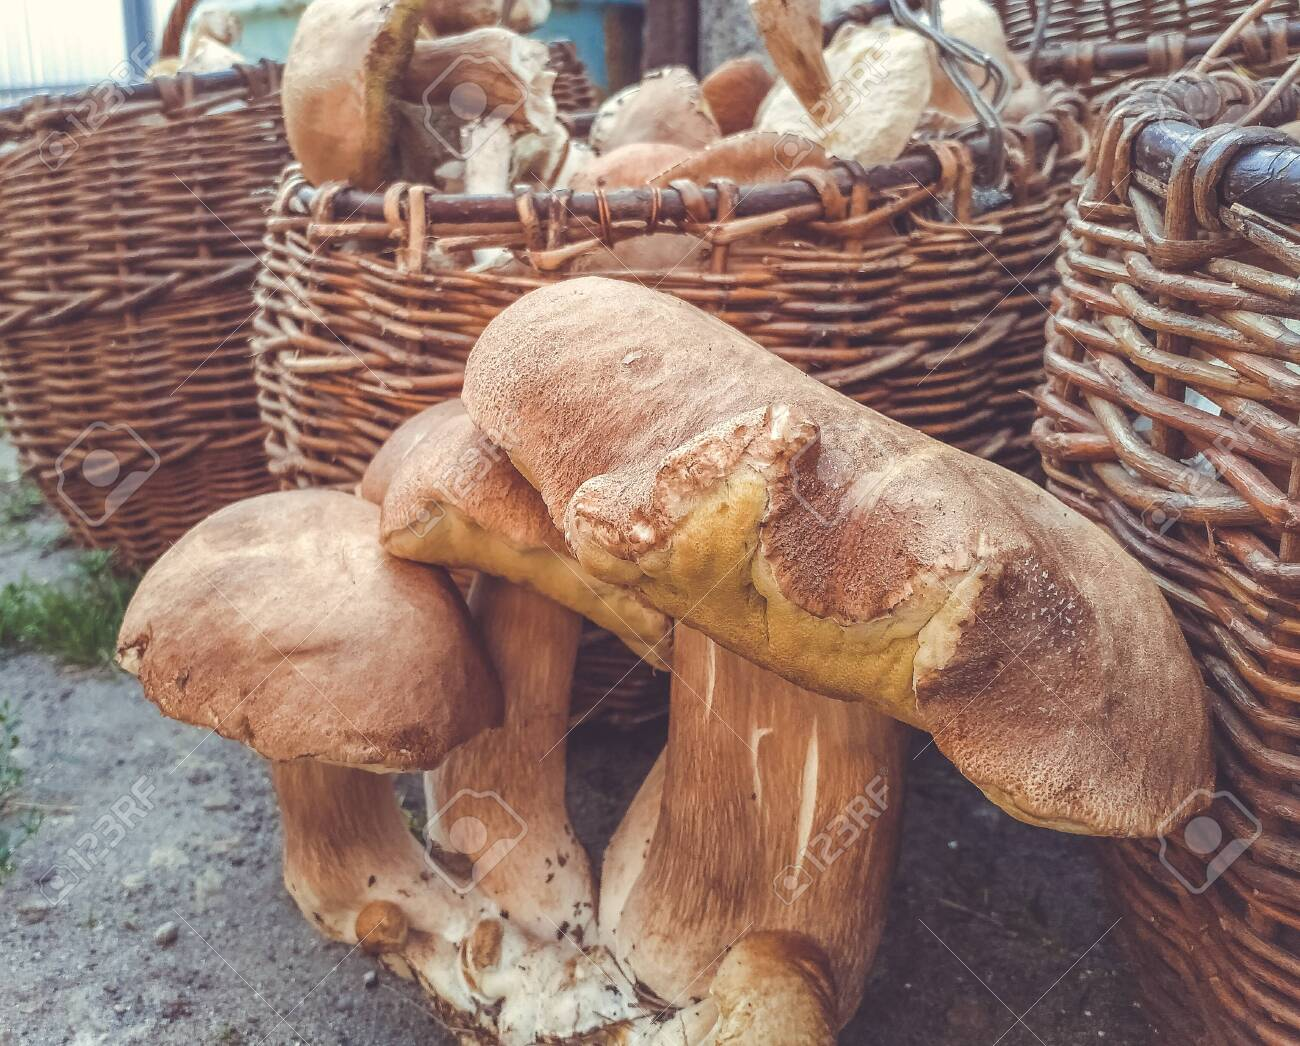 Wicker baskets, completely filled with different mushrooms. Bunch of porcini mushrooms next to baskets of mushrooms. - 137366012